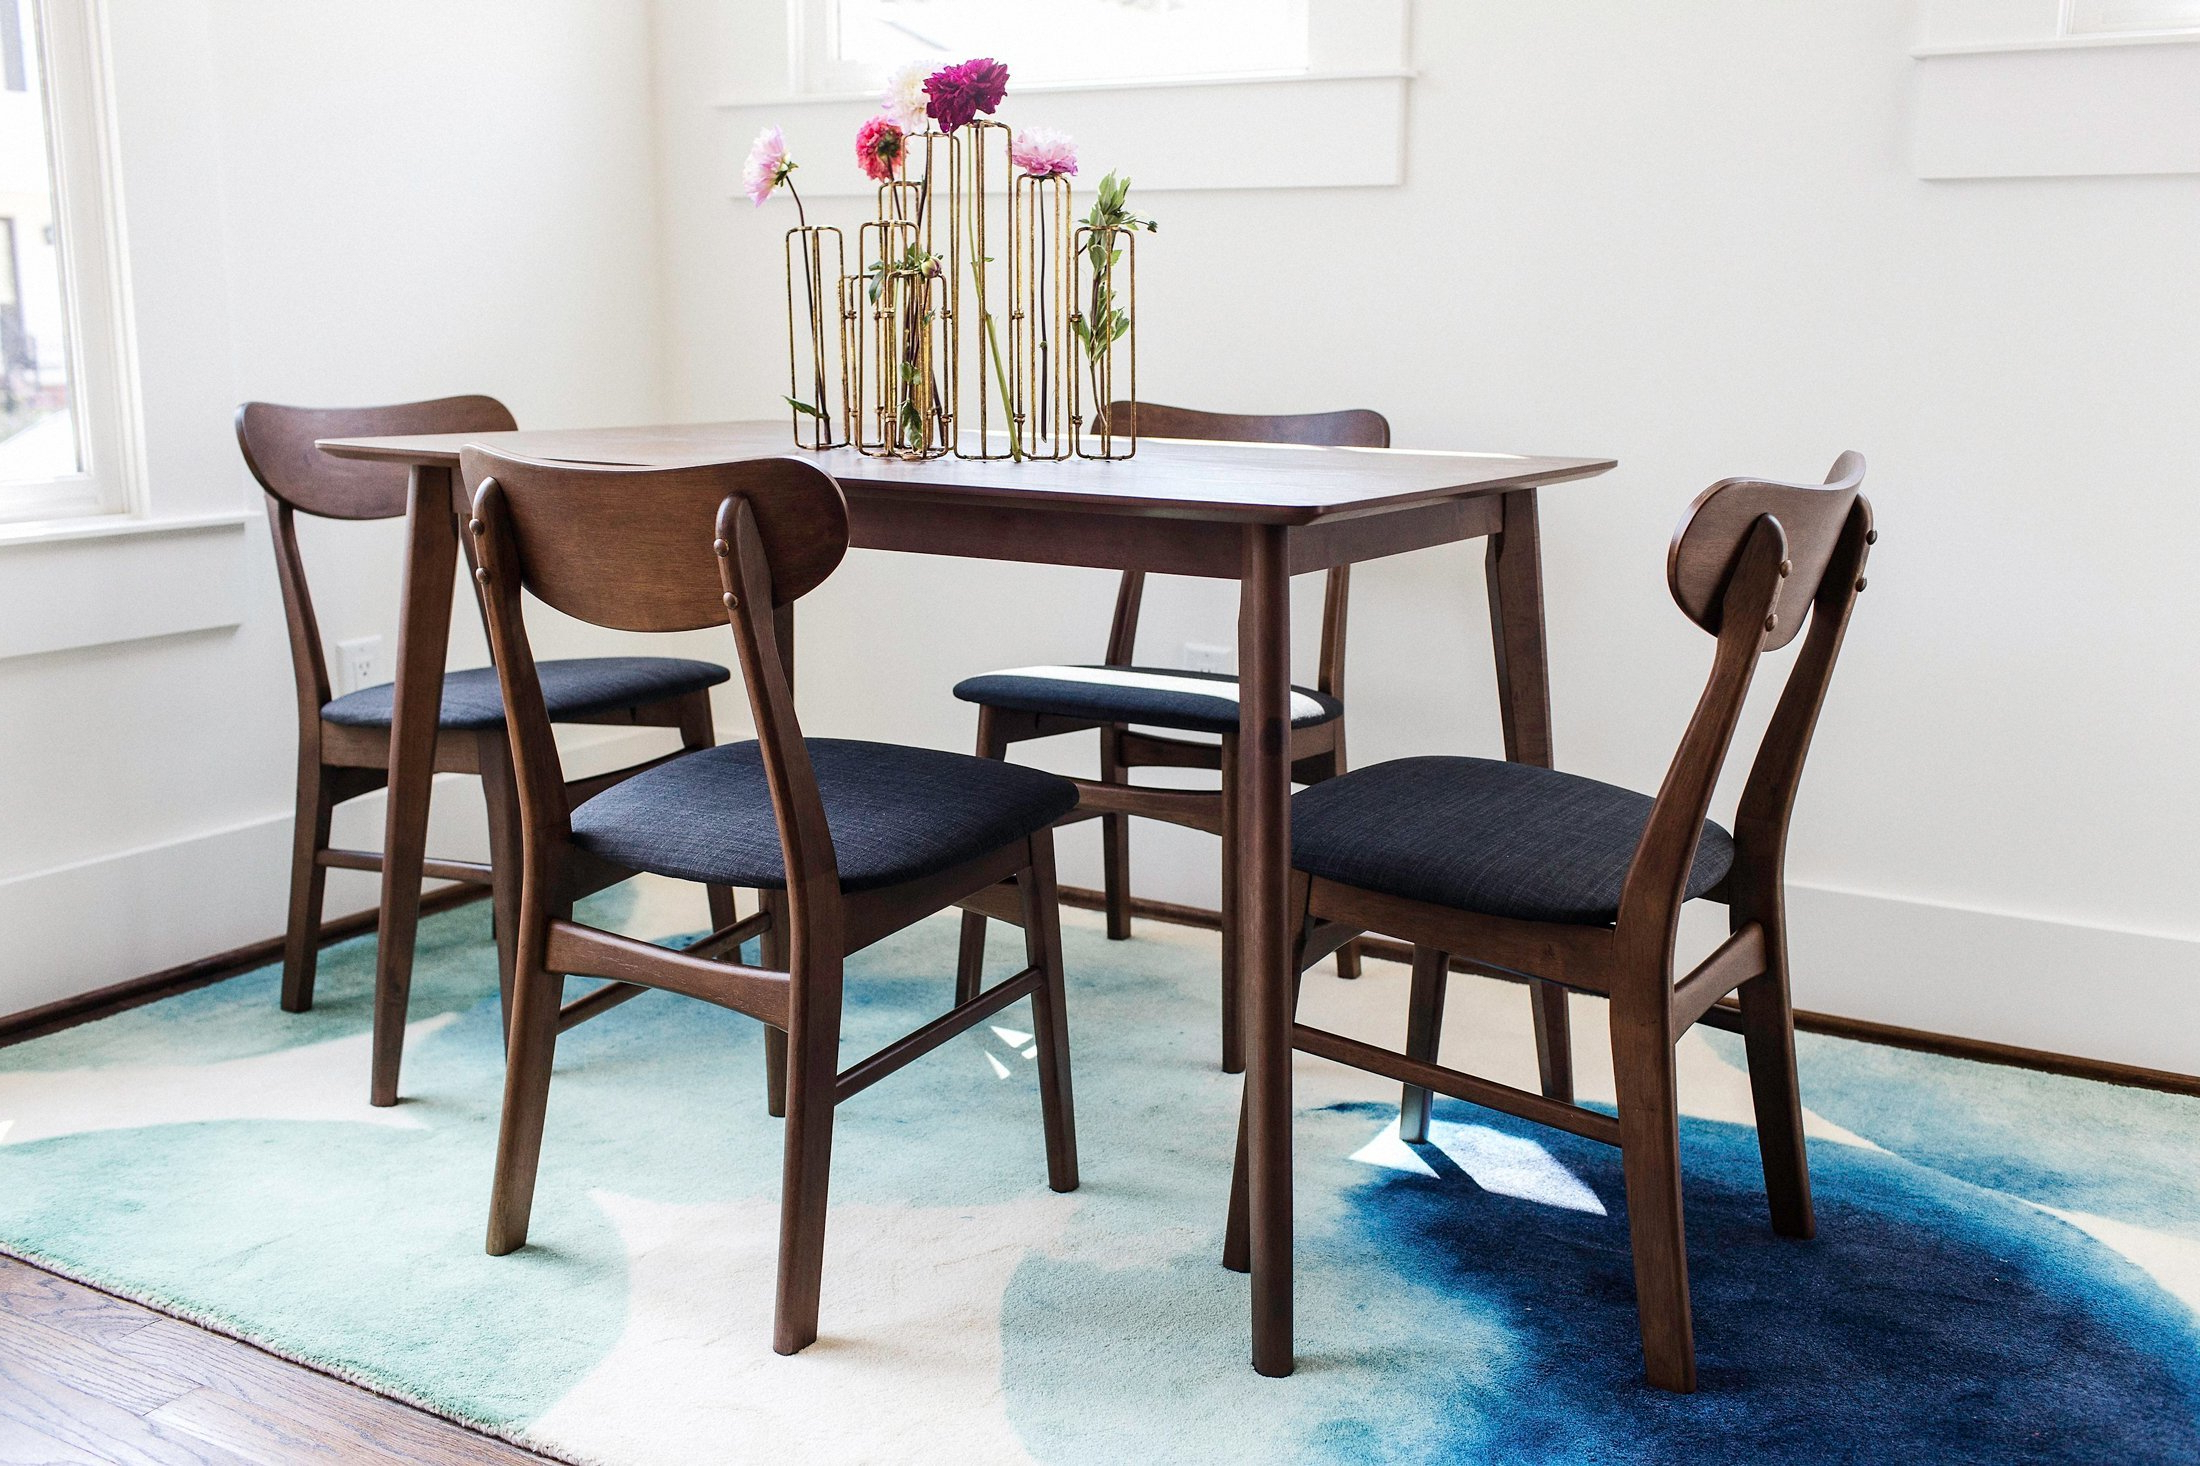 5 Piece Breakfast Nook Dining Sets Throughout Best And Newest George Oliver Velazquez 5 Piece Breakfast Nook Dining Set & Reviews (View 4 of 25)